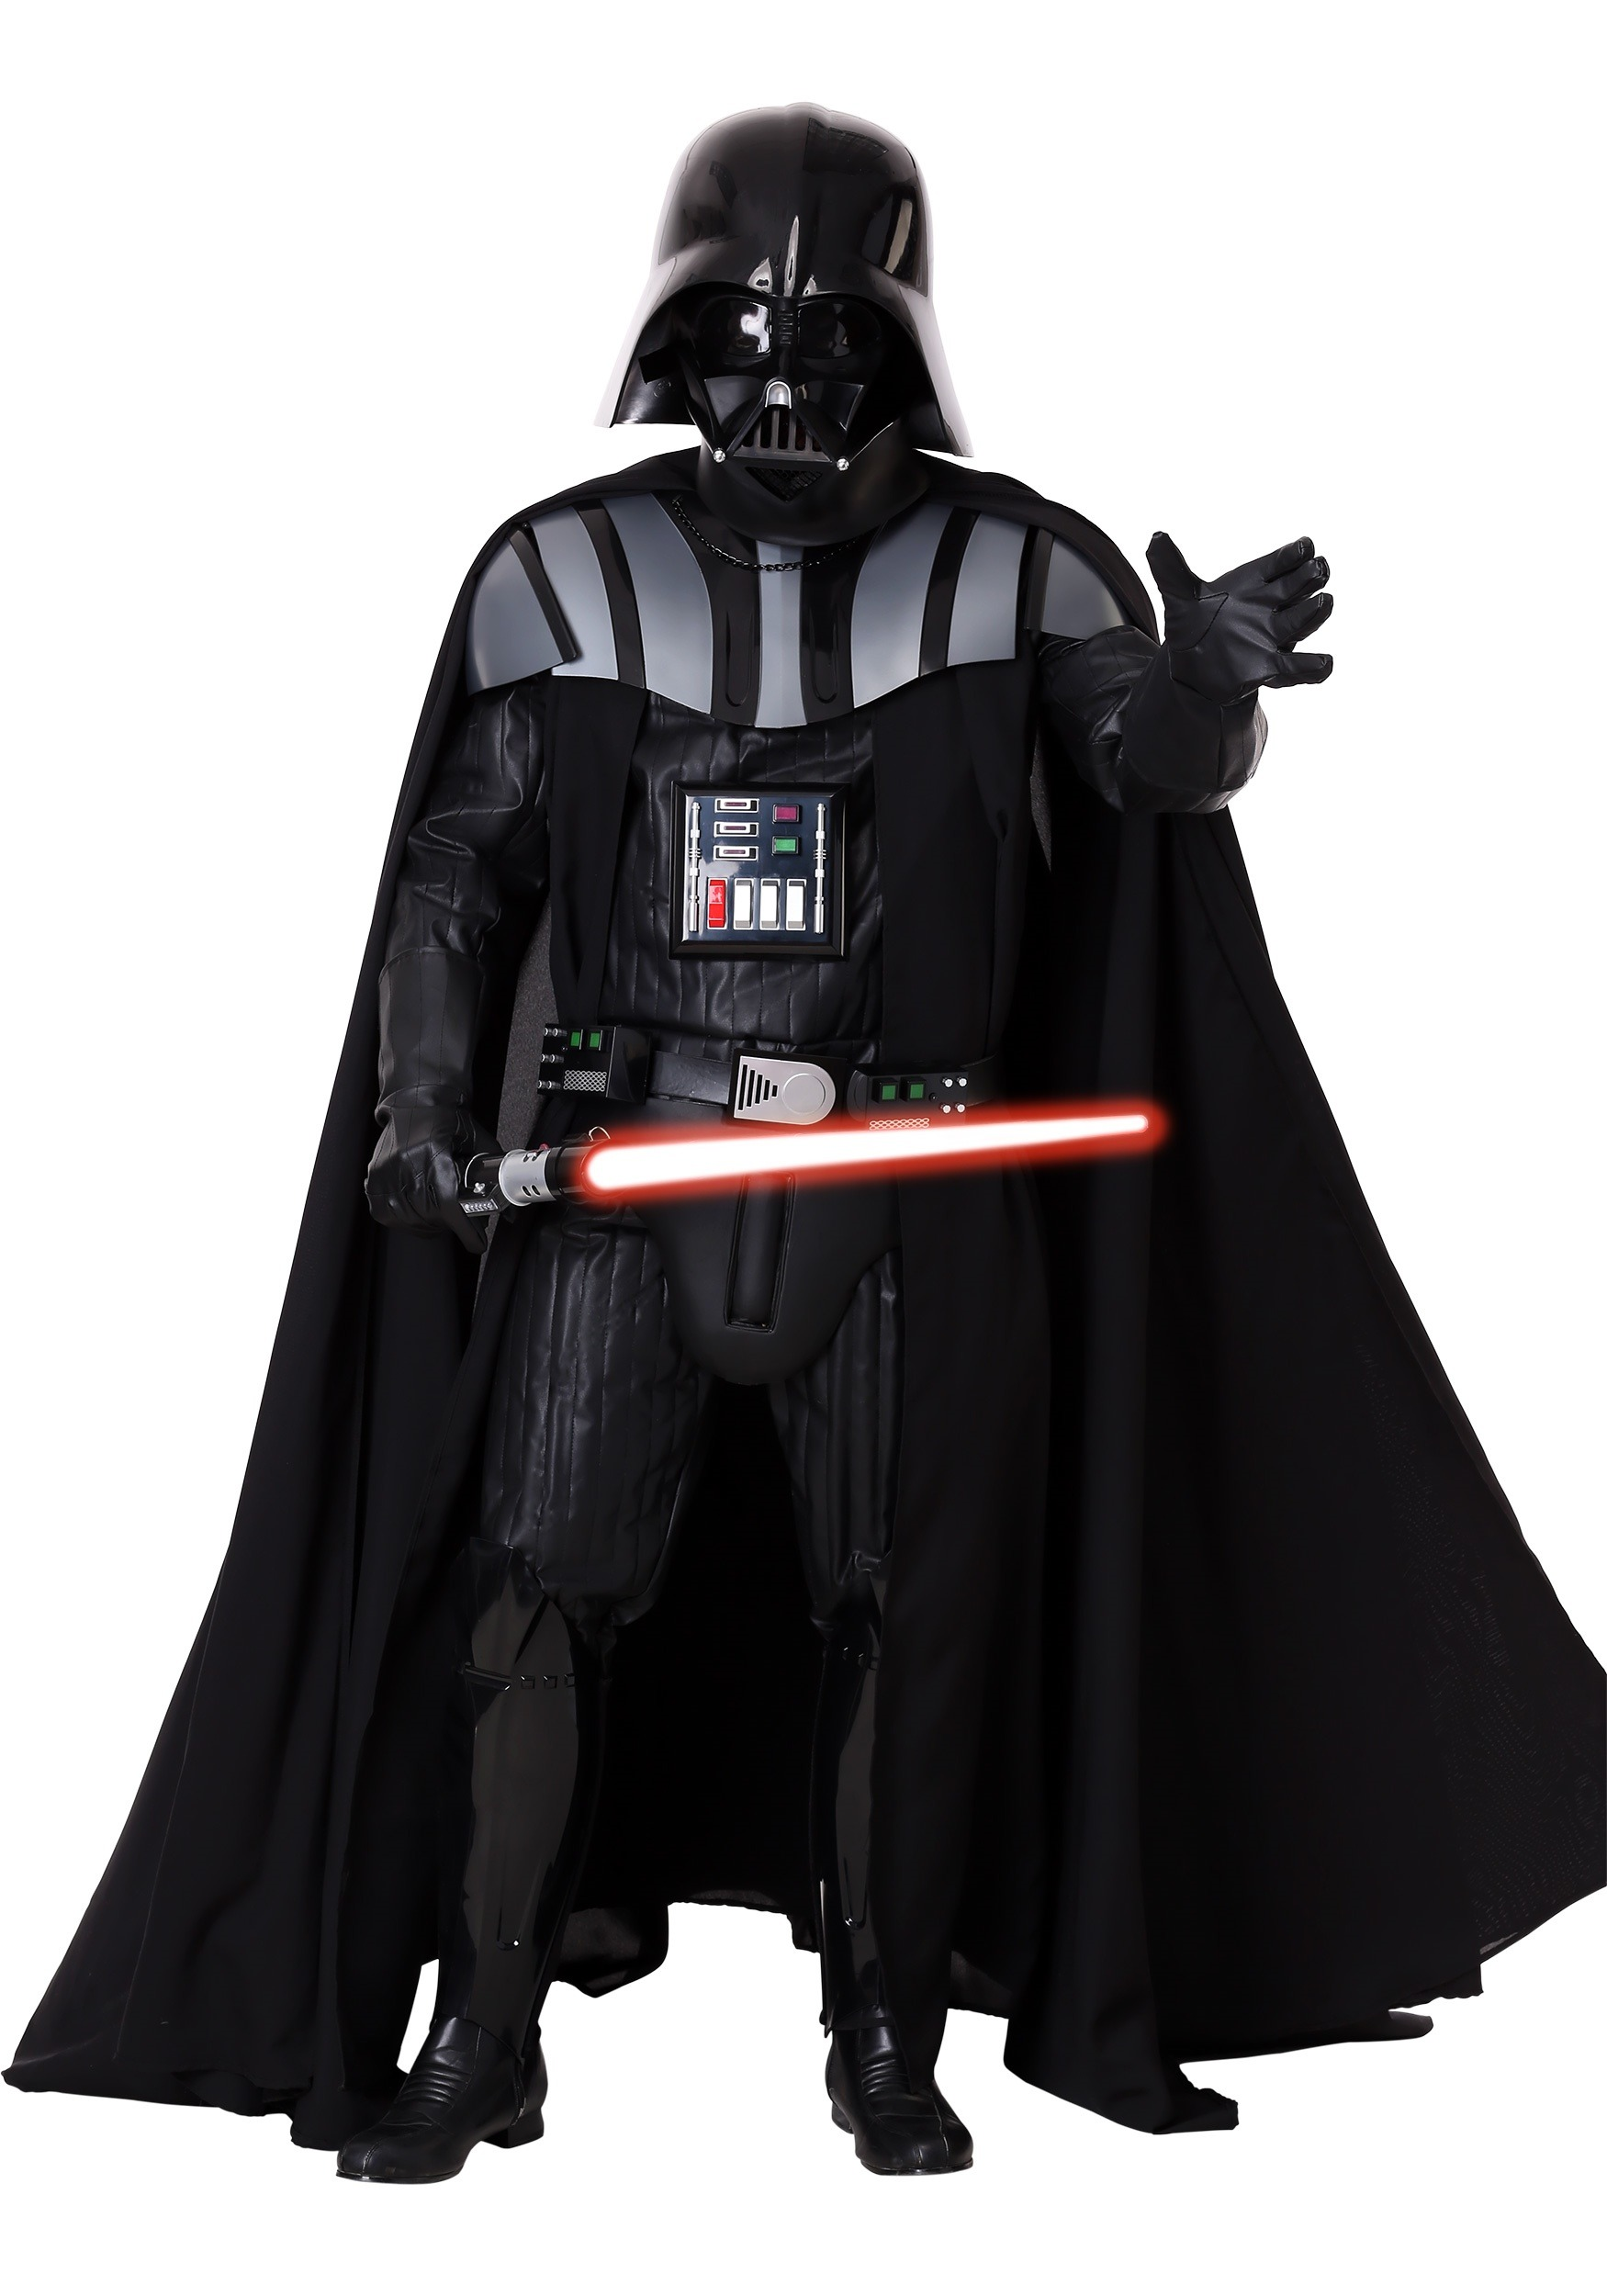 authentic darth vader costume. Black Bedroom Furniture Sets. Home Design Ideas